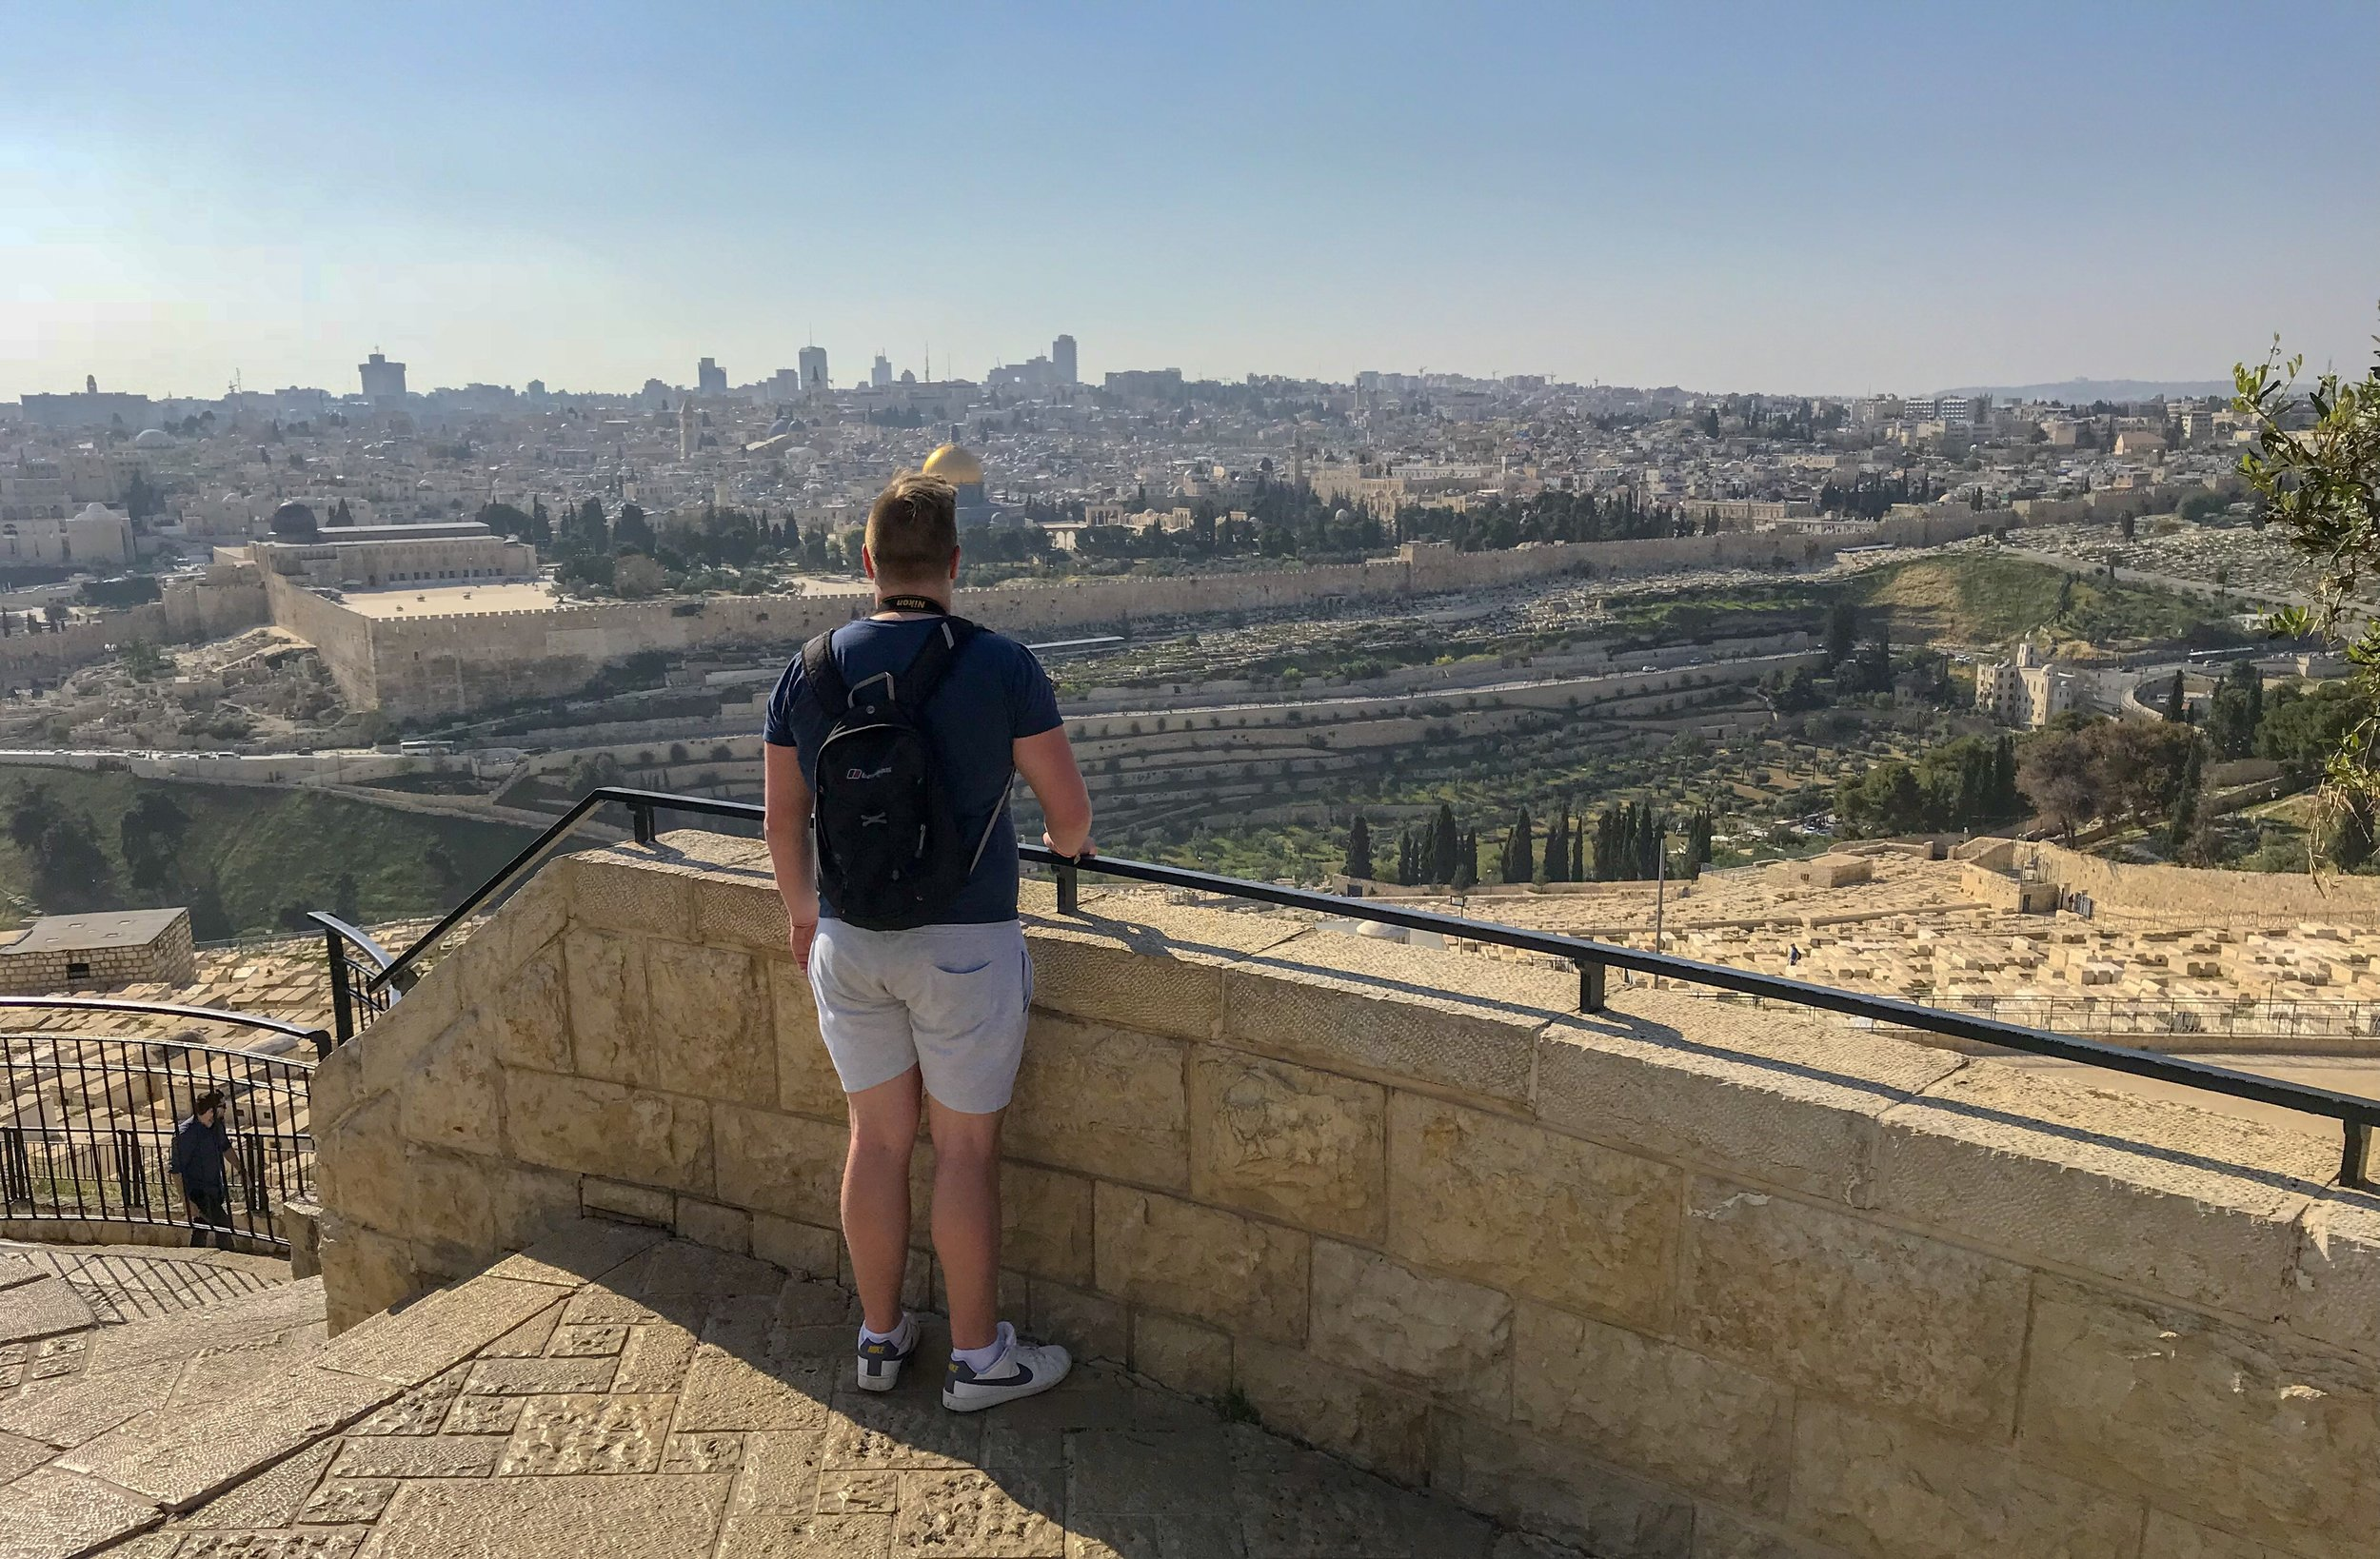 Looking across the Old City of Jerusalem from the Mount of Olives.